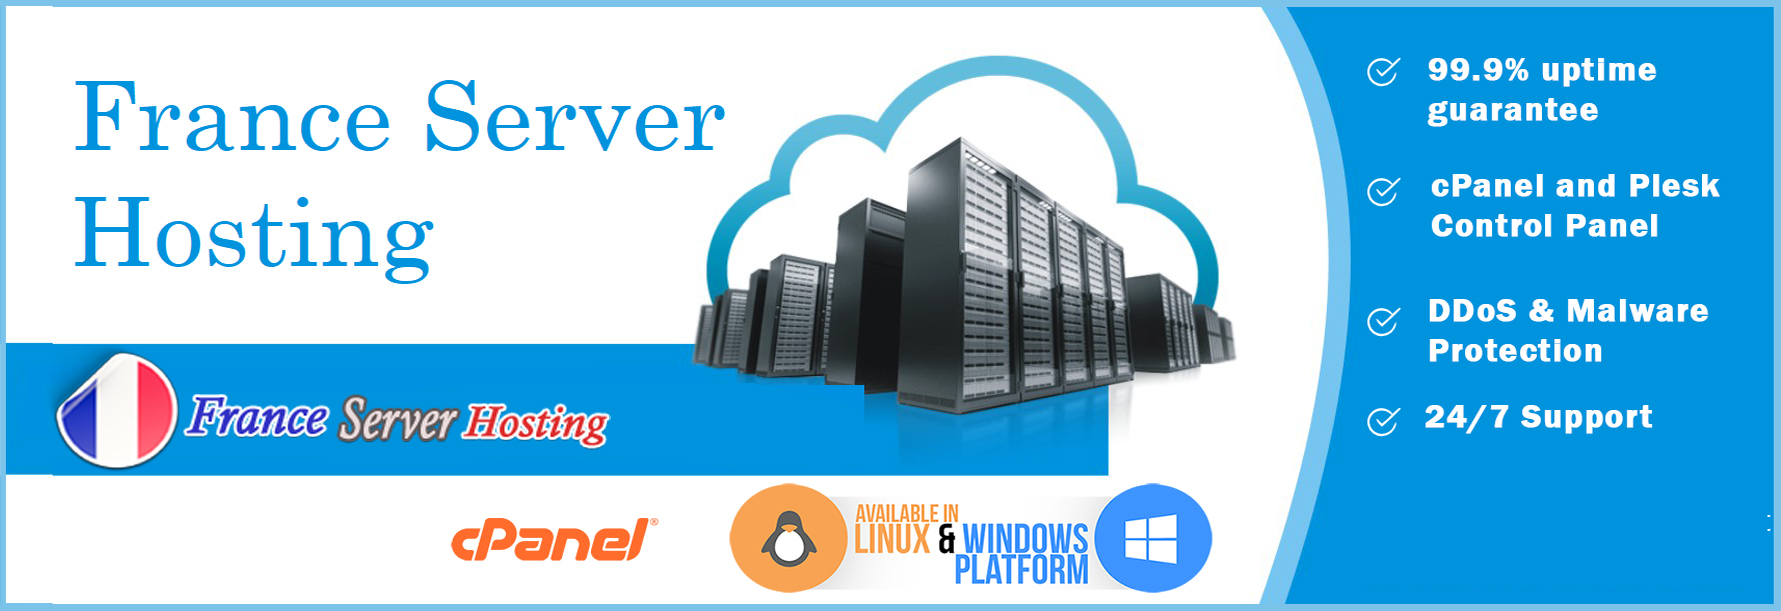 Experience Better Performance and Privacy with Our France Servers